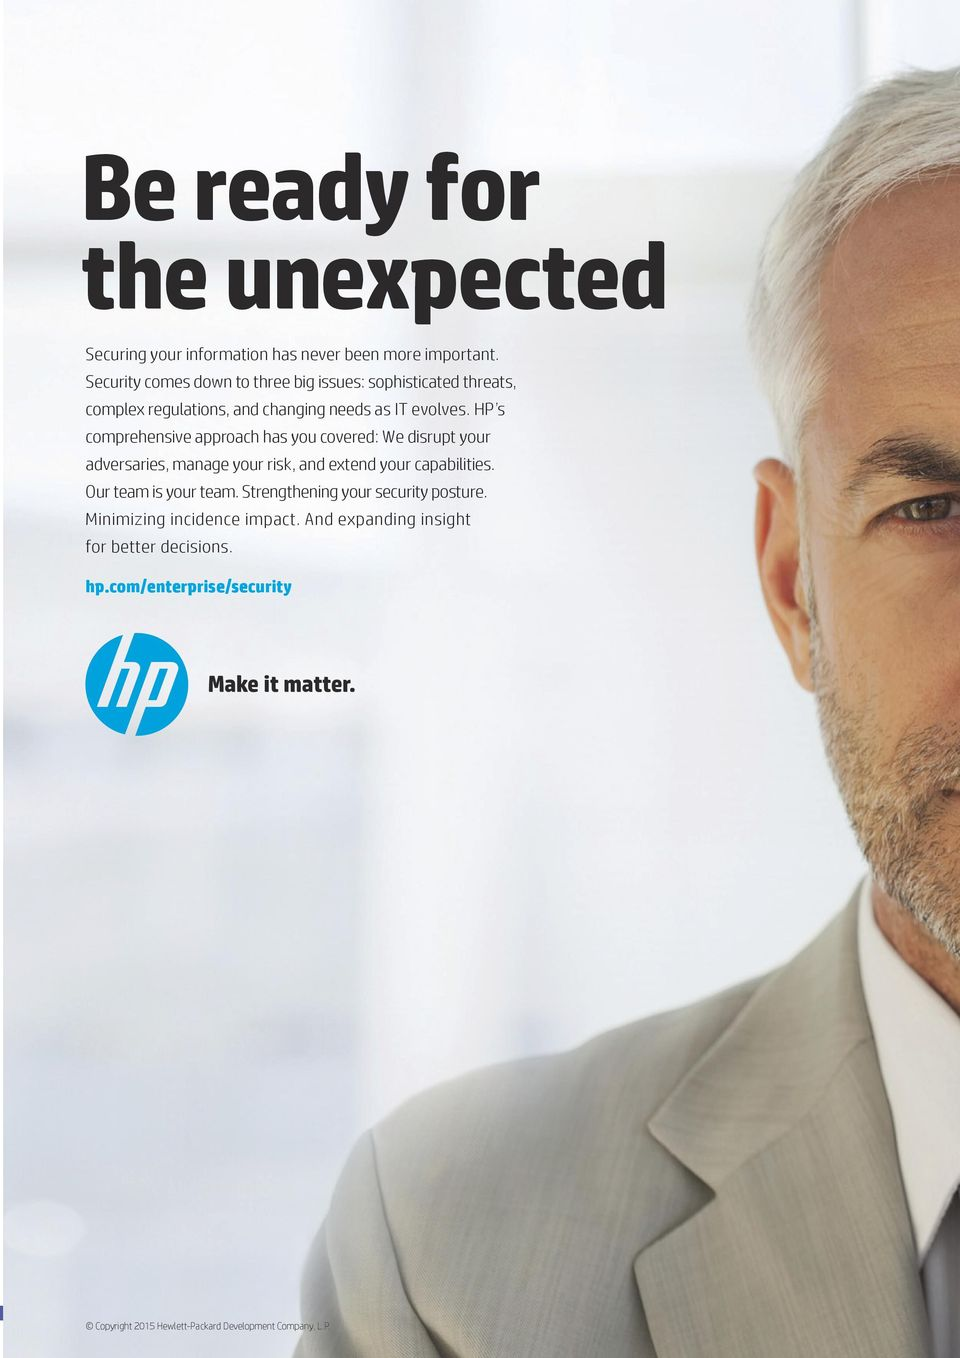 HP s comprehensive approach has you covered: We disrupt your adversaries, manage your risk, and extend your capabilities.